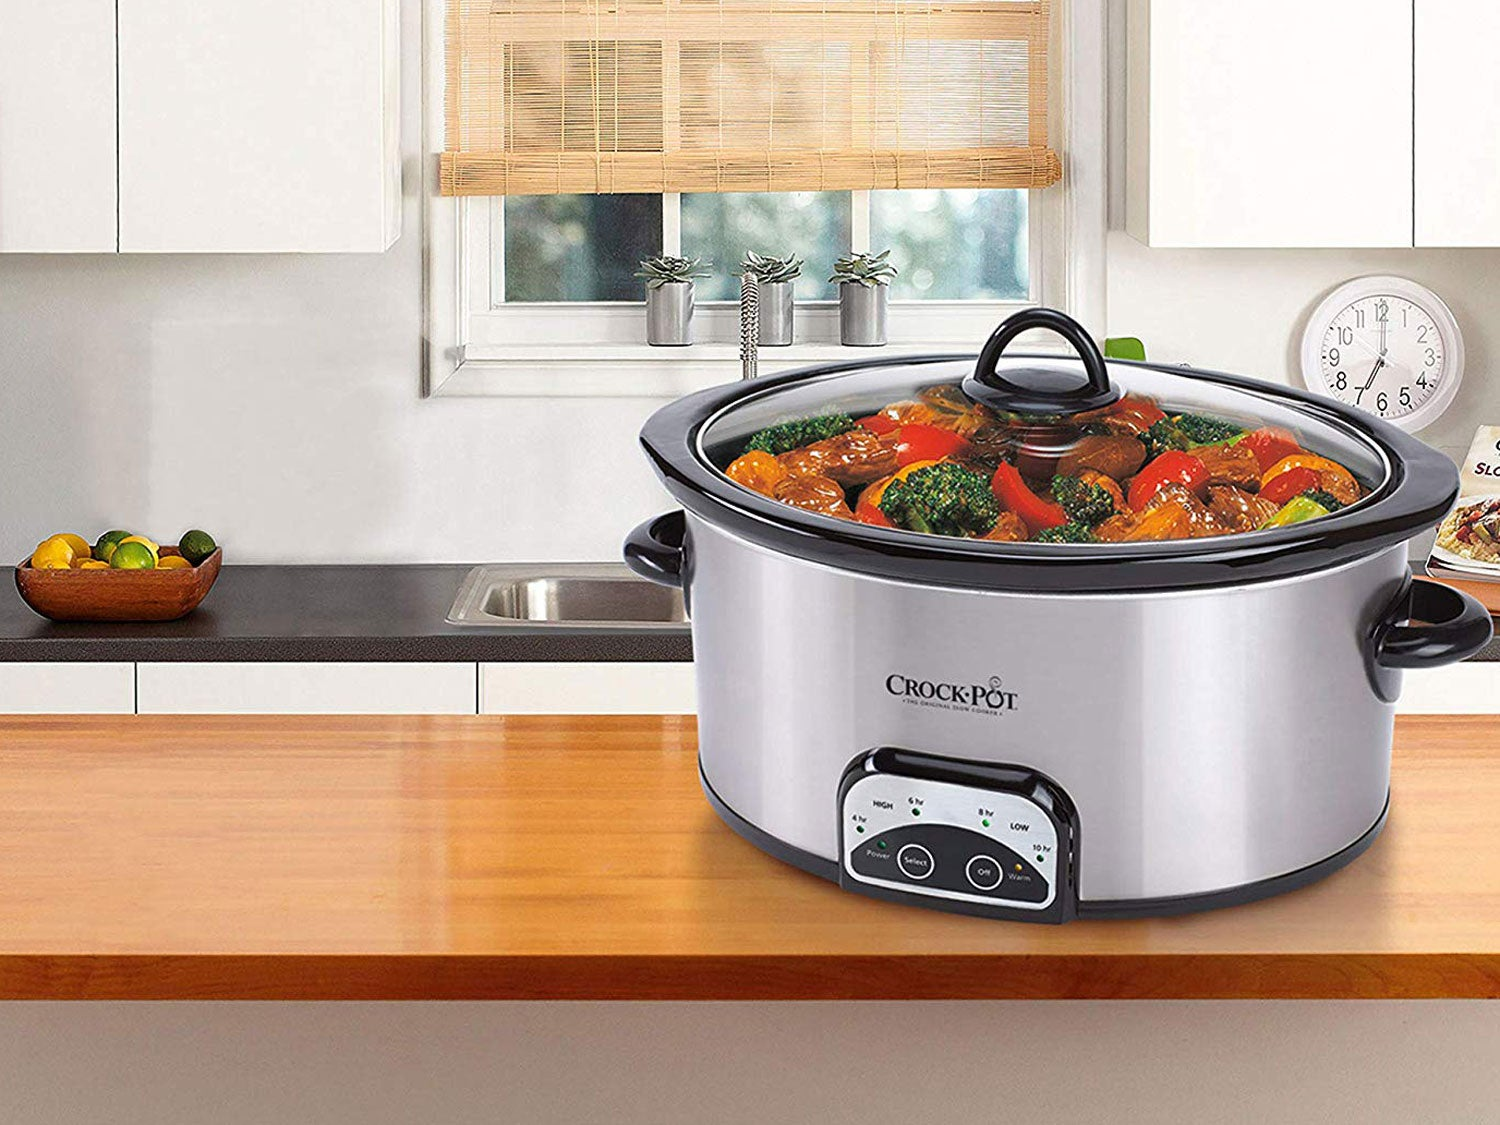 3 Features You Need in Your Next Slow Cooker